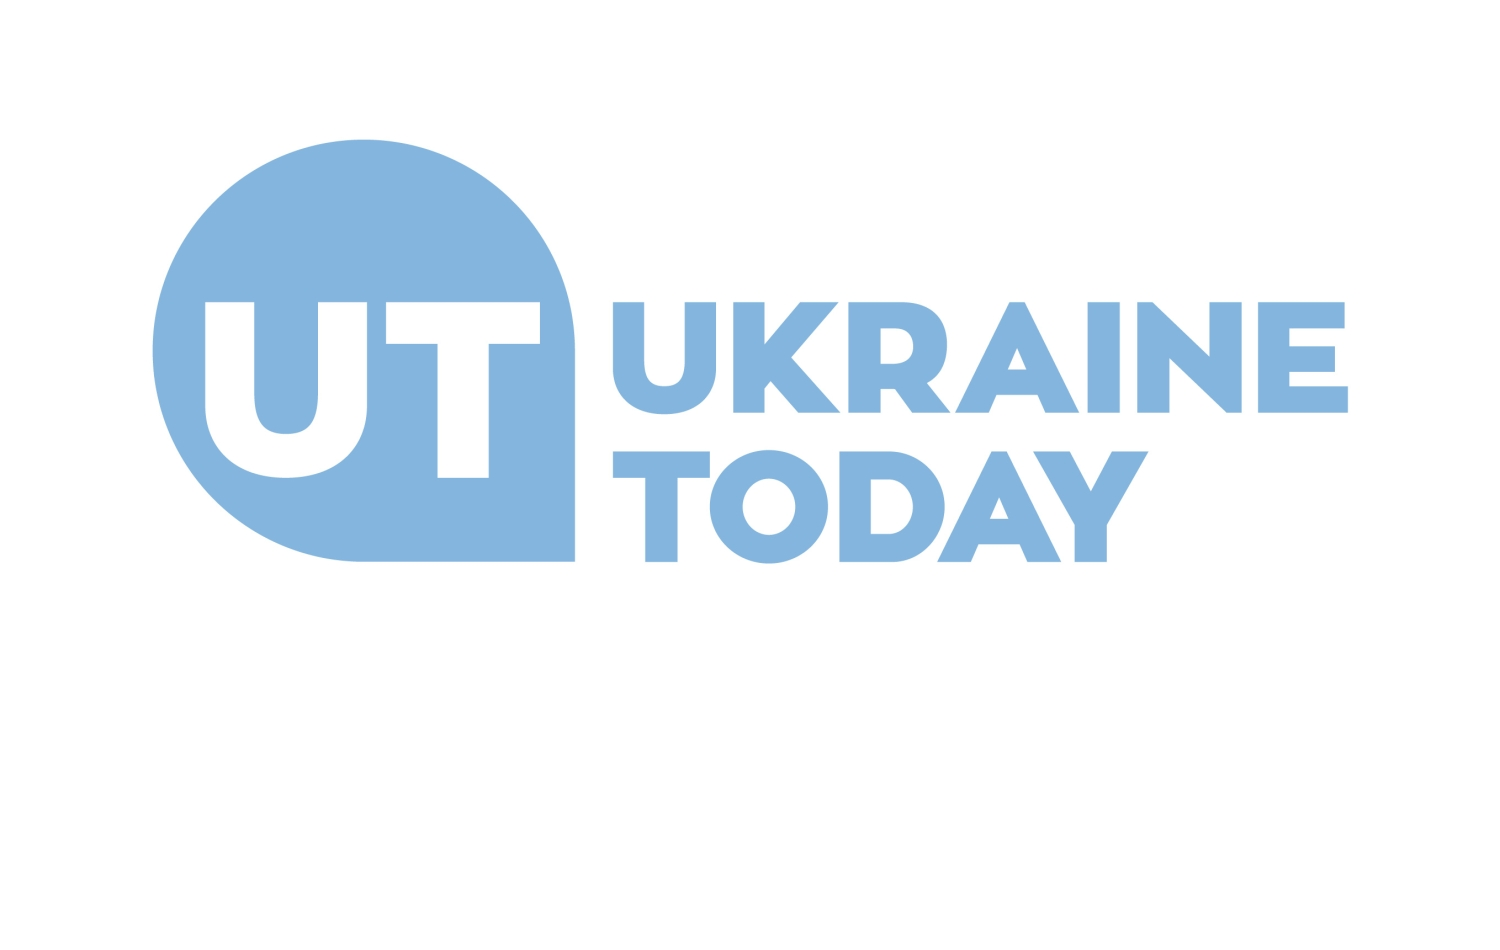 Ukraine Today logo